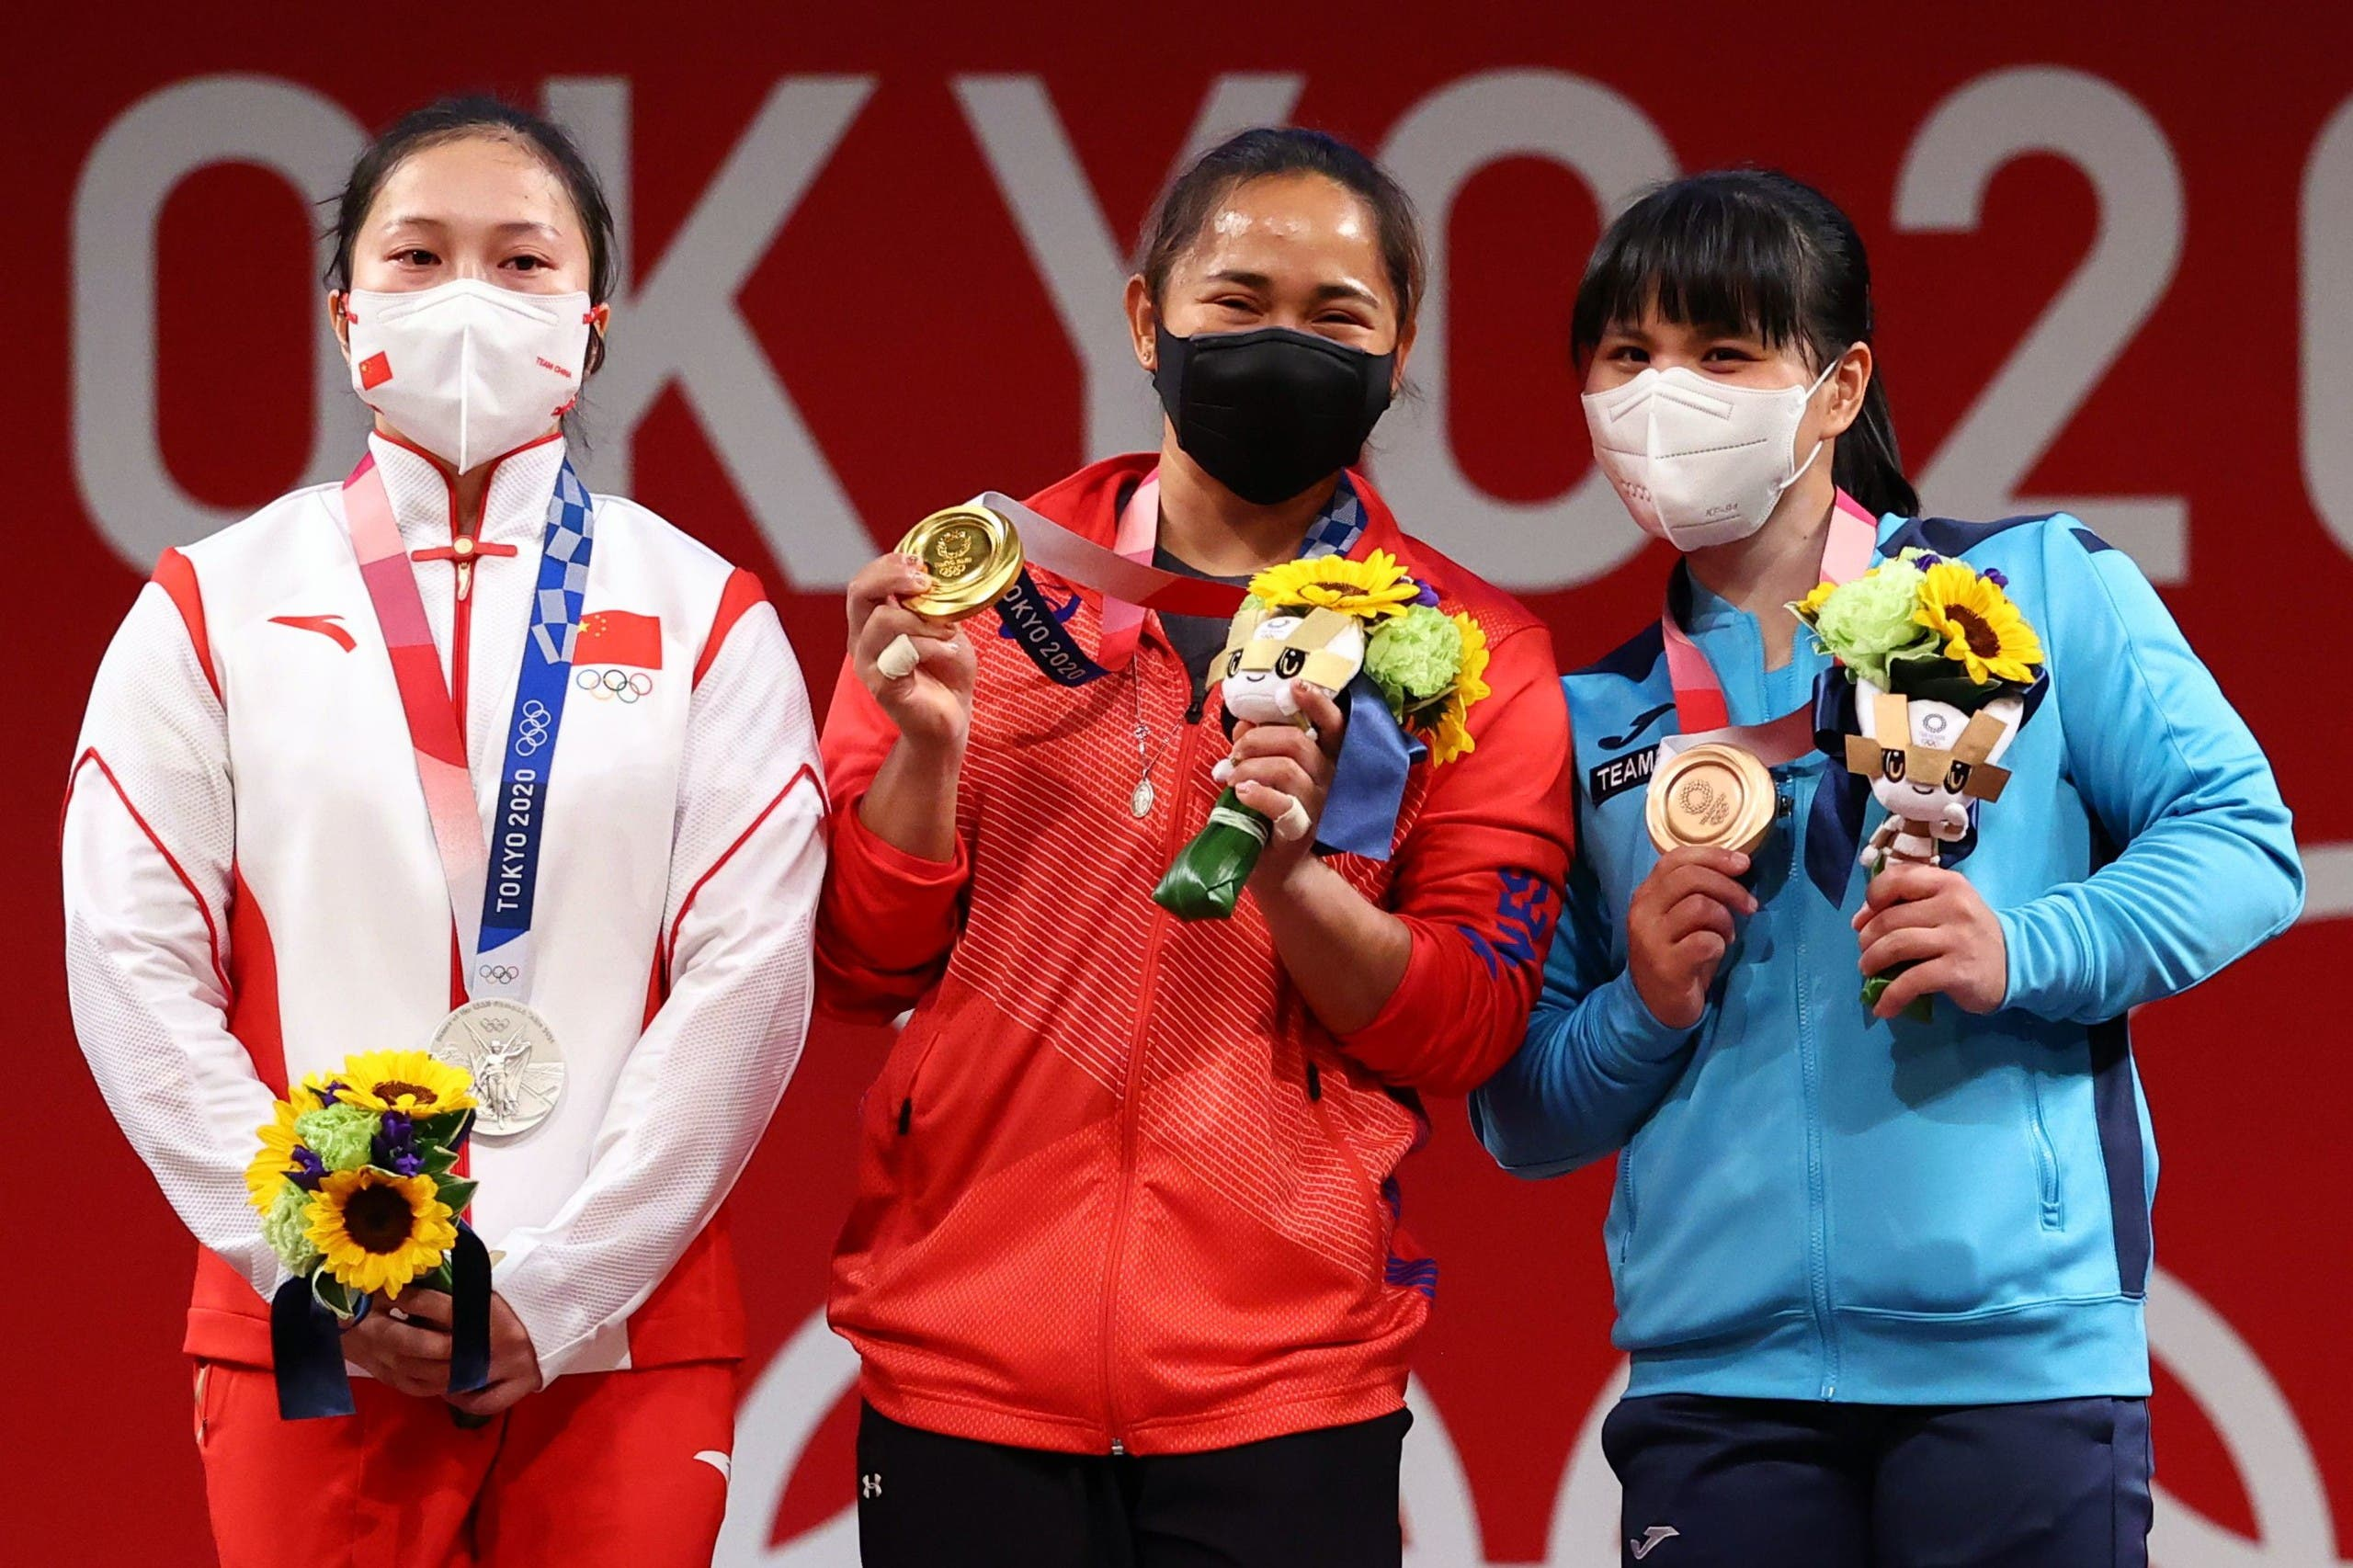 Tokyo 2020 Olympics - Weightlifting - Women's 55kg - Medal Ceremony - Tokyo International Forum, Tokyo, Japan - July 26, 2021. Gold medalist Hidilyn Diaz of the Philippines, silver medalist Liao Qiuyun of China and bronze medalist Zulfiya Chinshanlo of Kazakhstan pose. (Reuters)